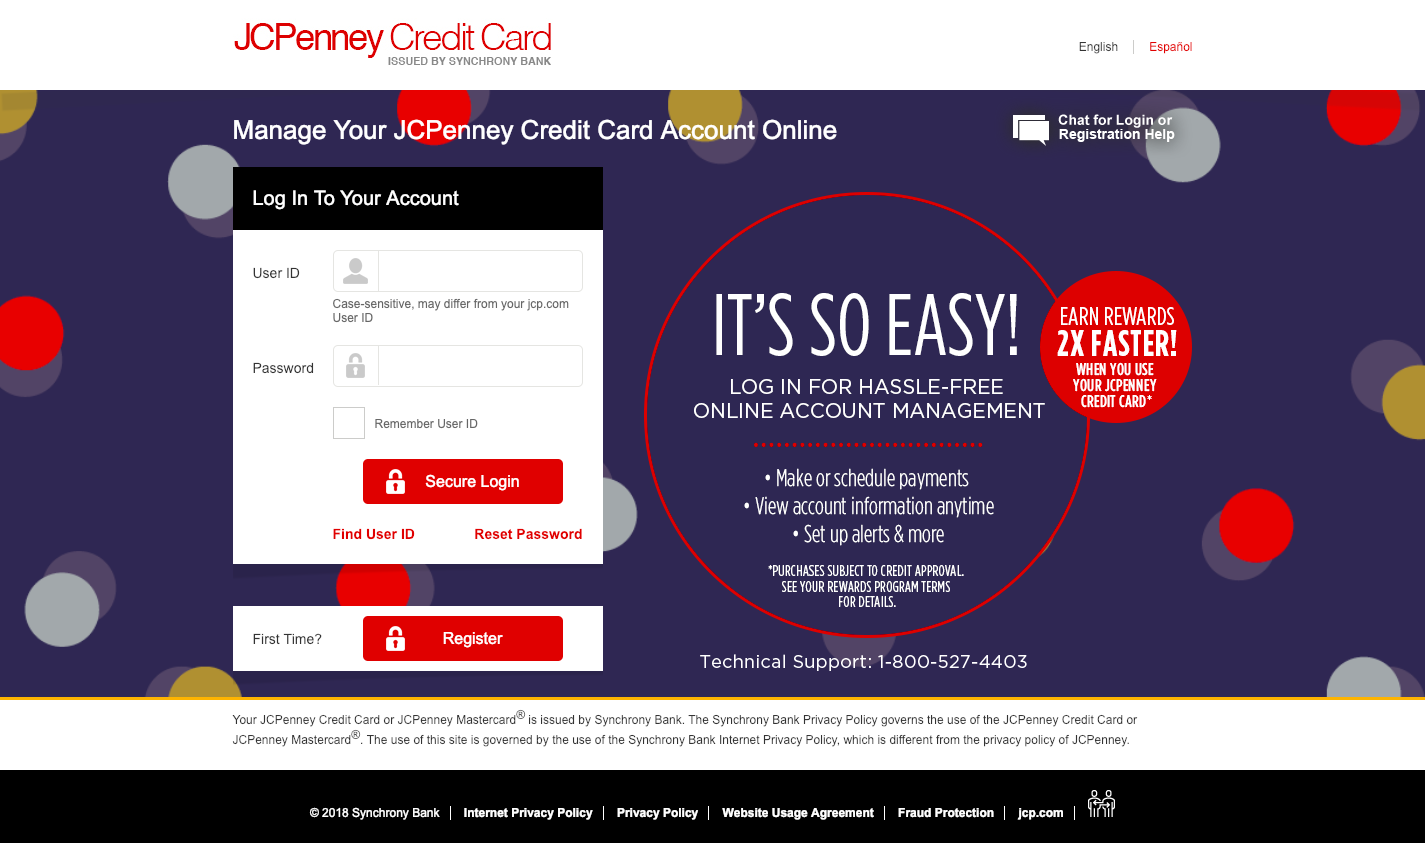 Manage Your JCPenney Credit Card Account